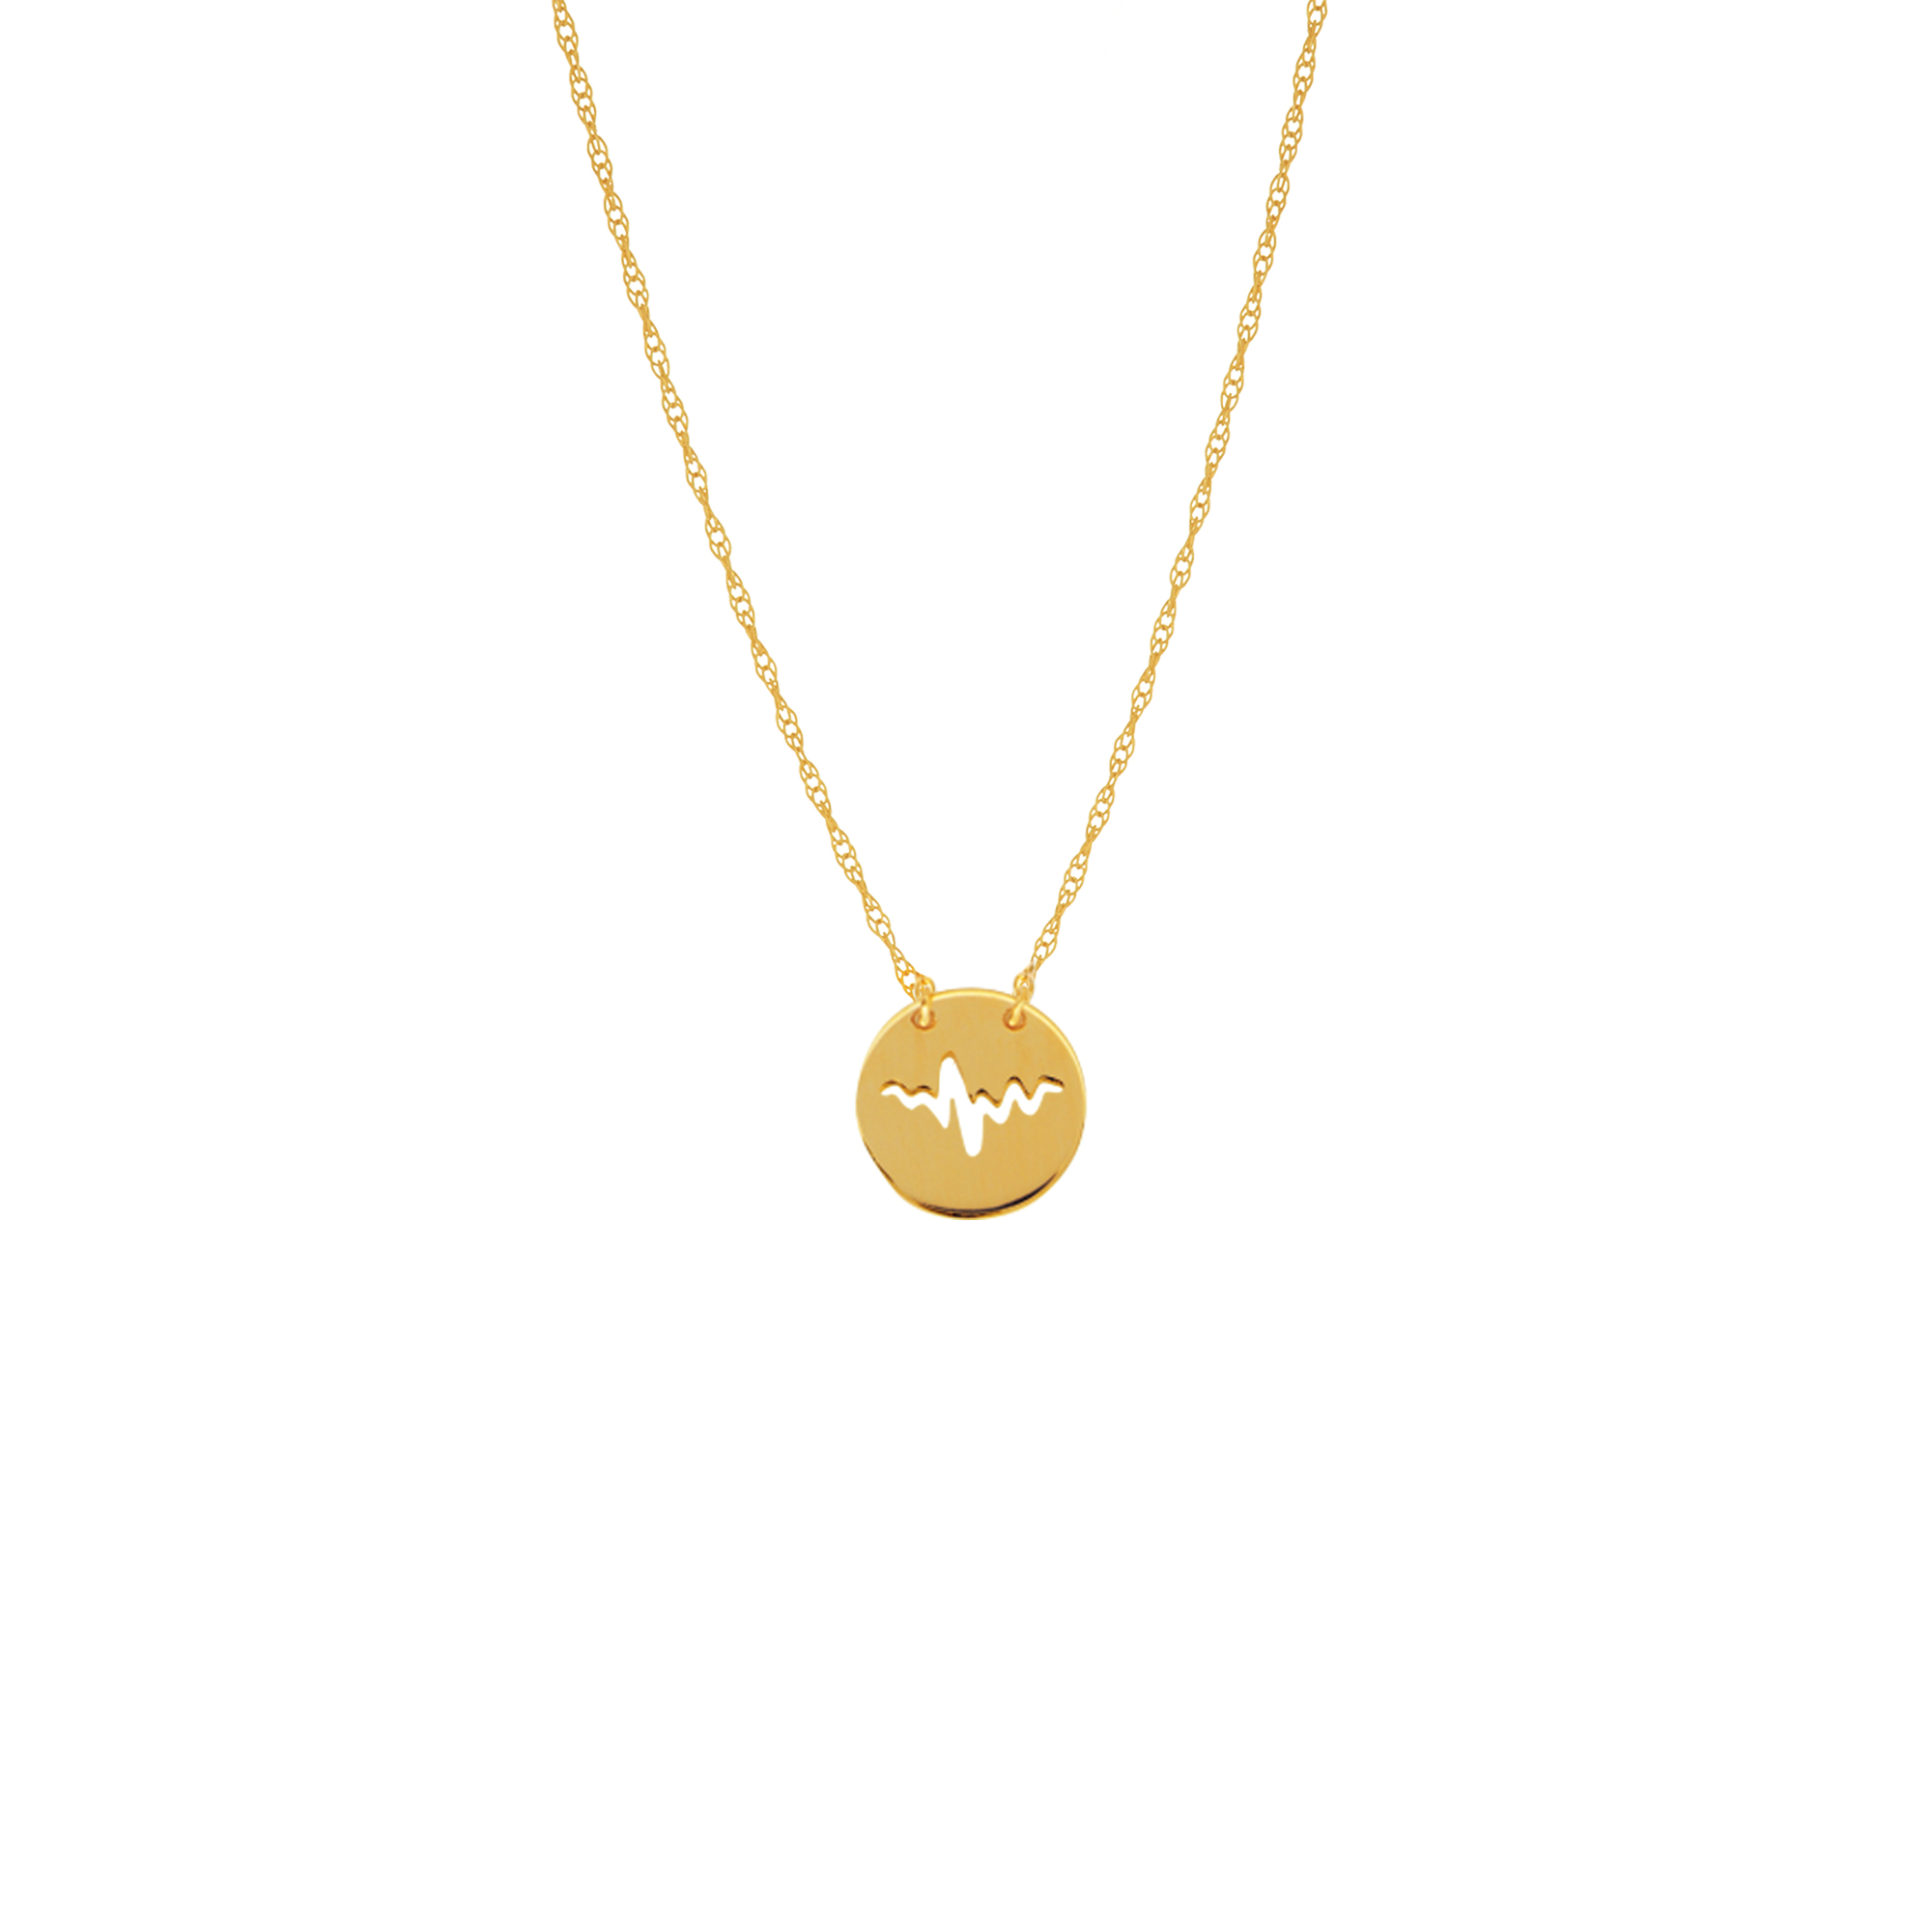 Heartbeat Necklace, 14Kt Gold Heartbeat Necklace 18